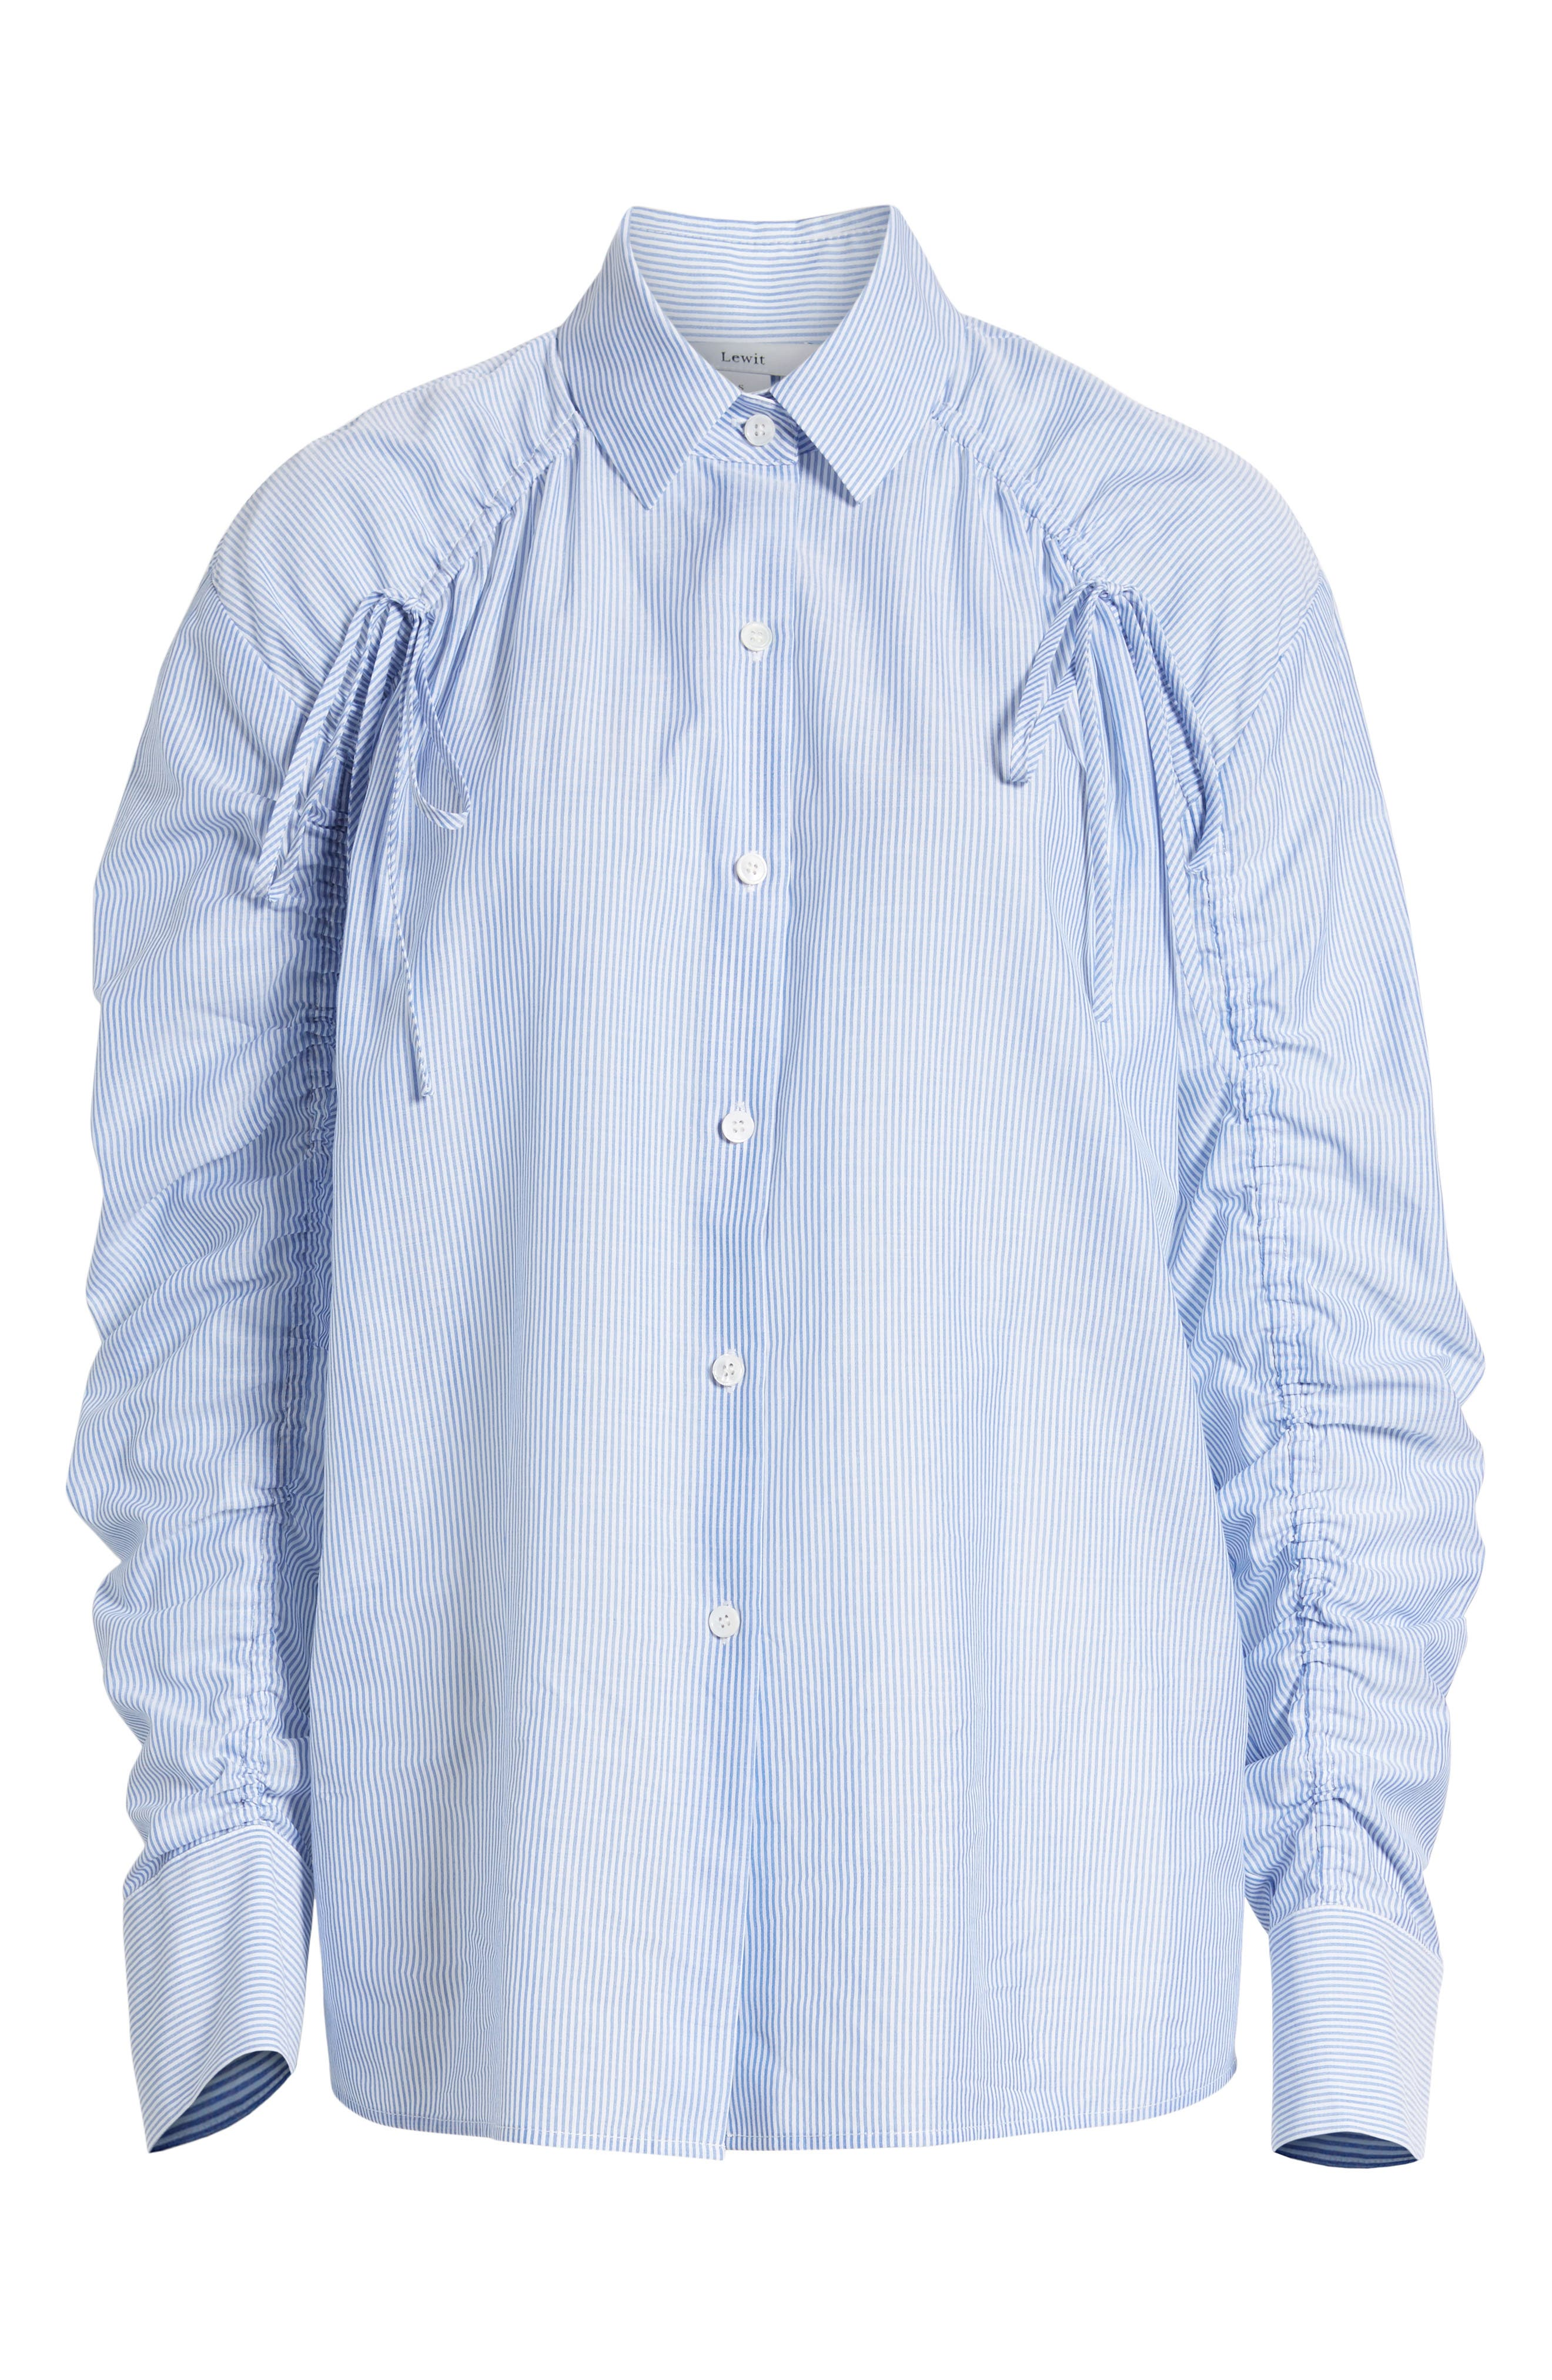 Ruched Sleeve Stripe Shirt,                             Alternate thumbnail 6, color,